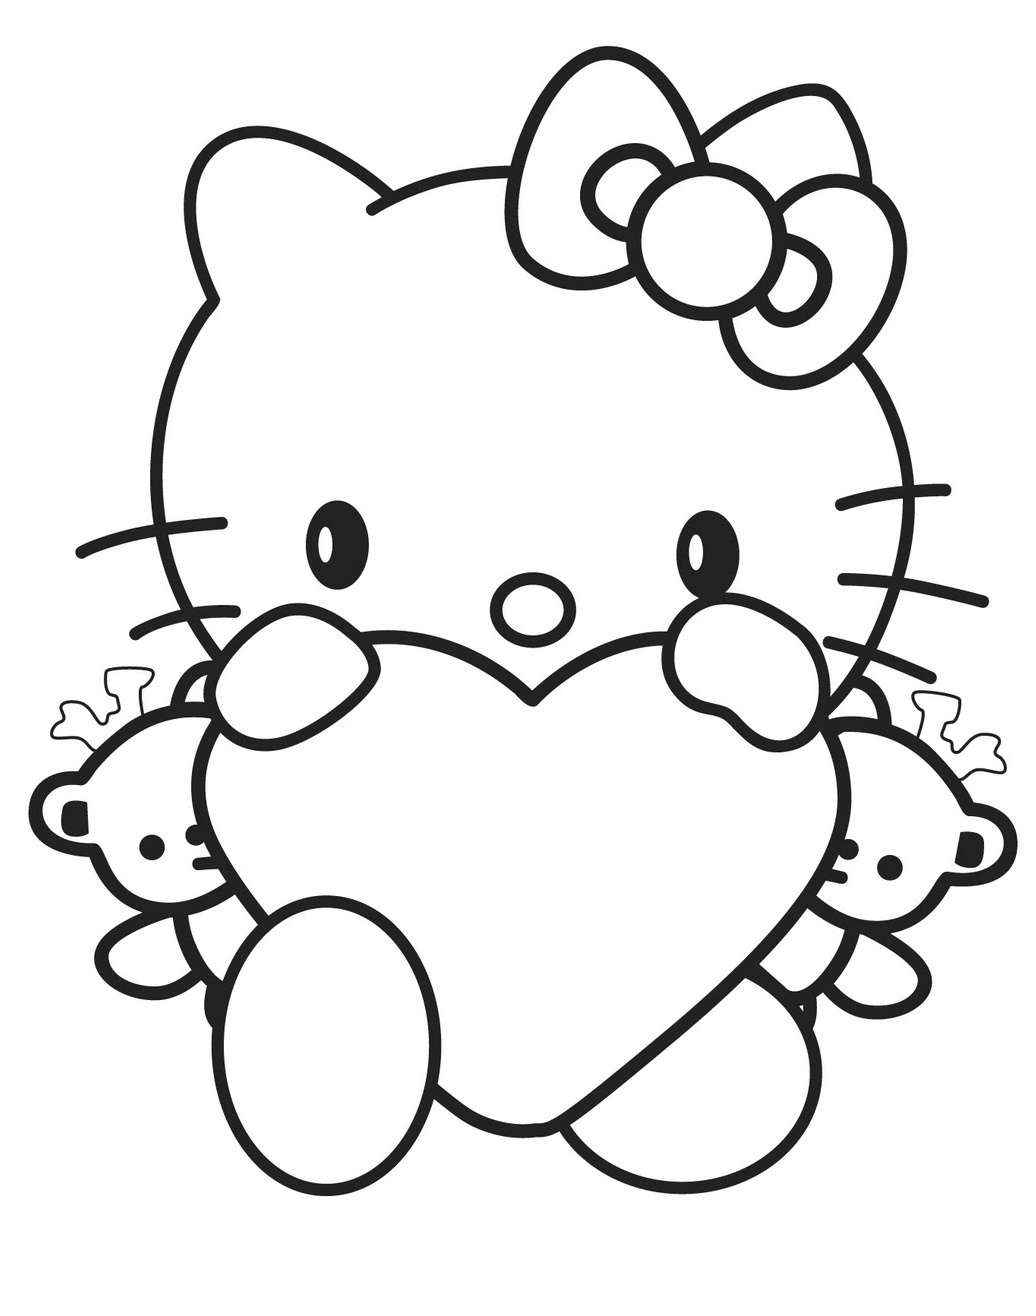 hello kit coloring pages - photo#21